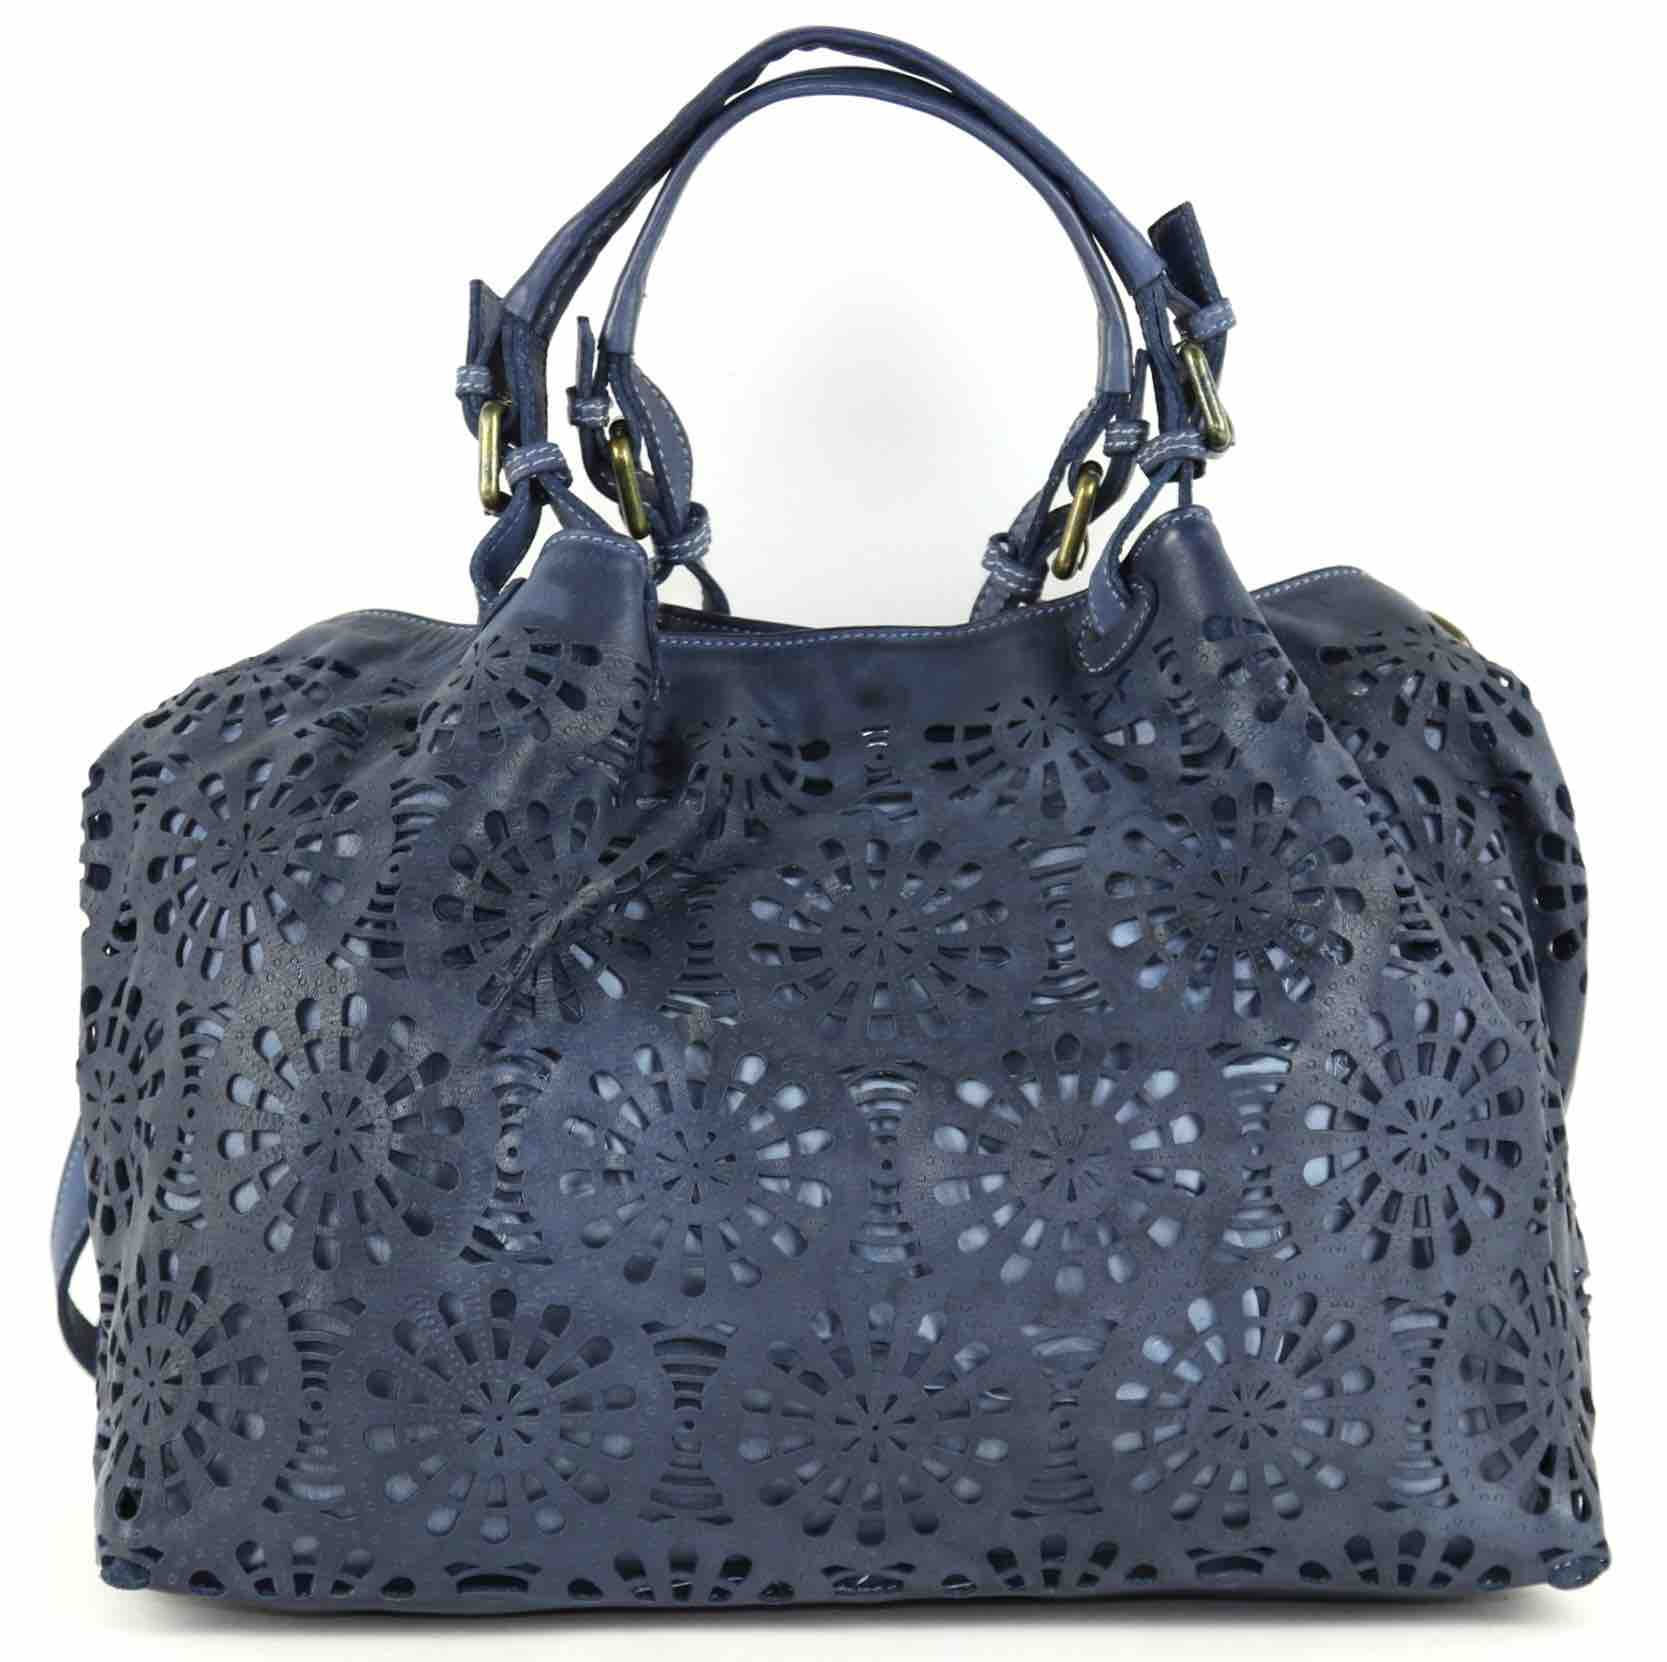 LUCIA Tote Bag Laser Cut Detail Navy